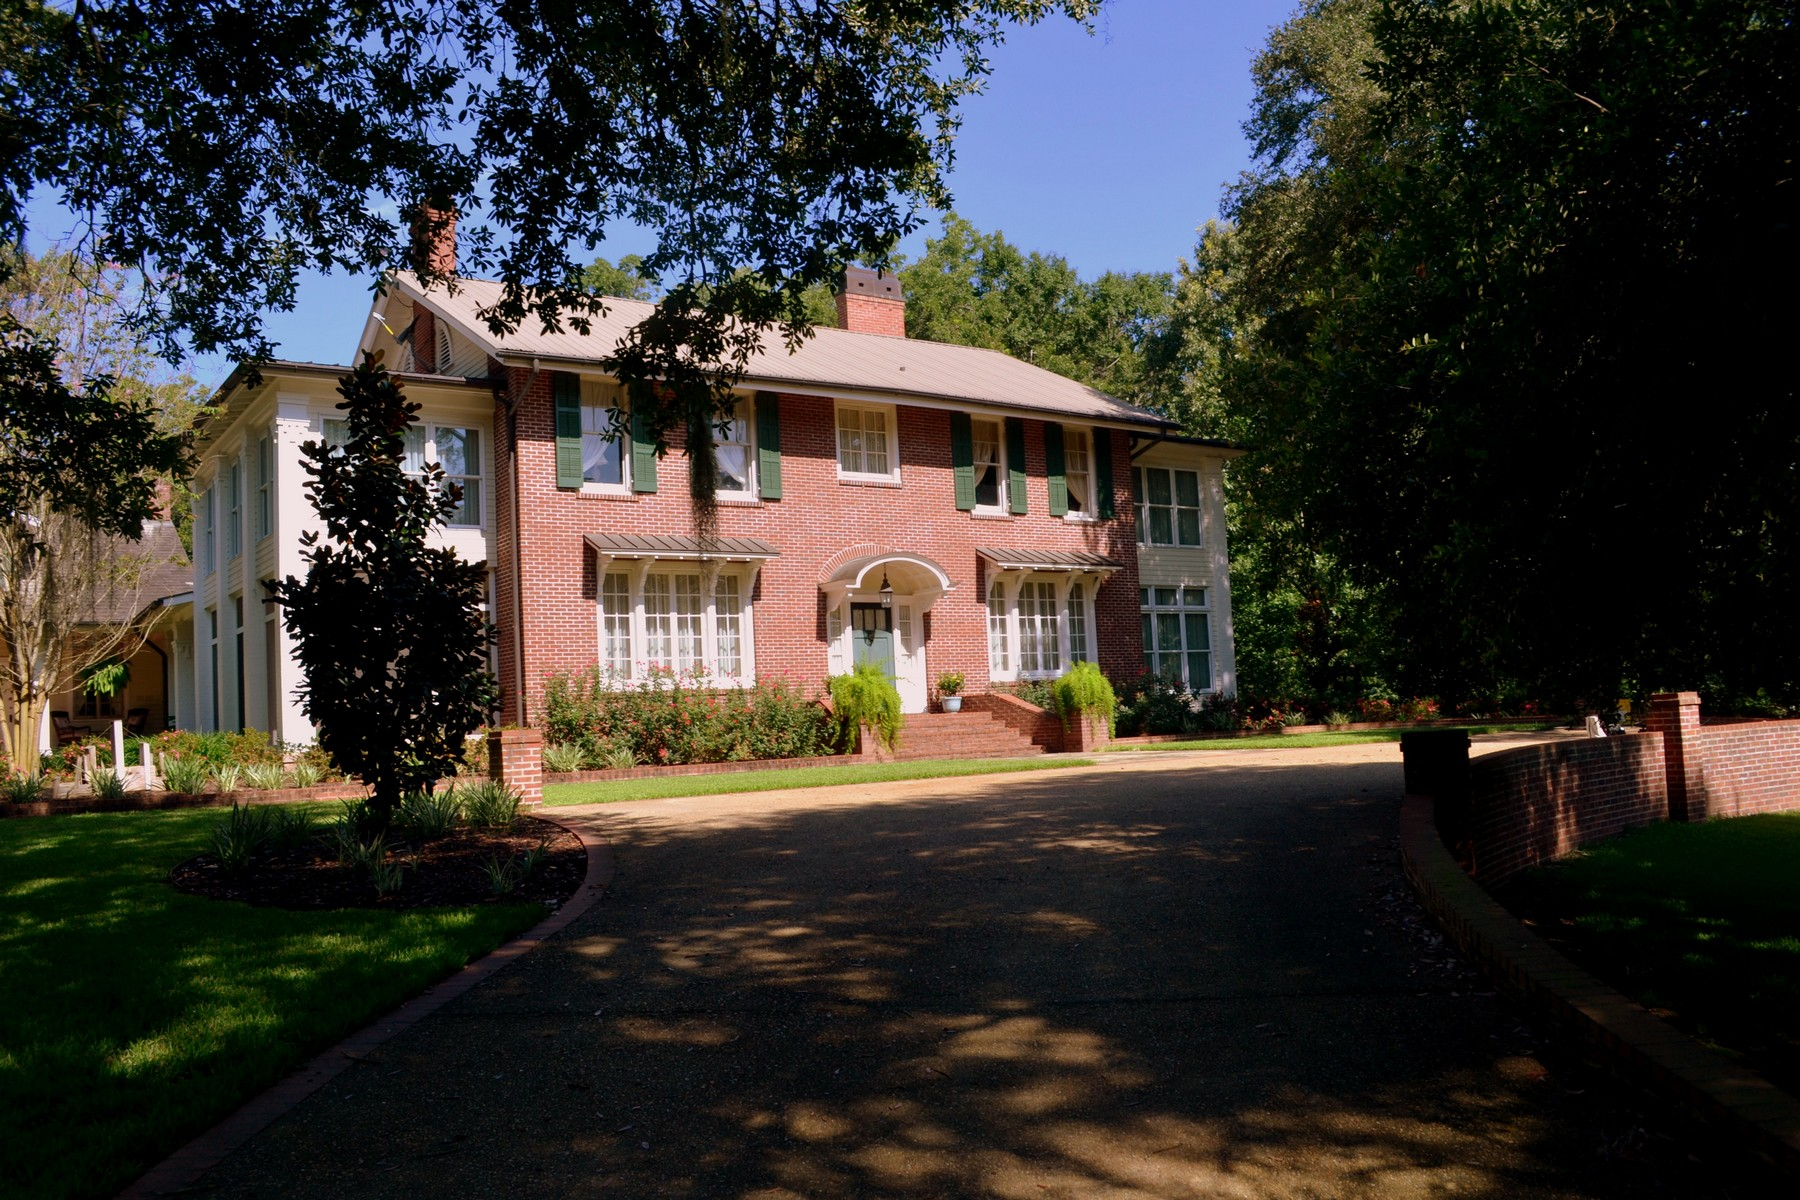 Single Family Home for Sale at Ormonde - Natchez, Mississippi 1164 Lower Woodville Rd Natchez, Mississippi, 39120 United States